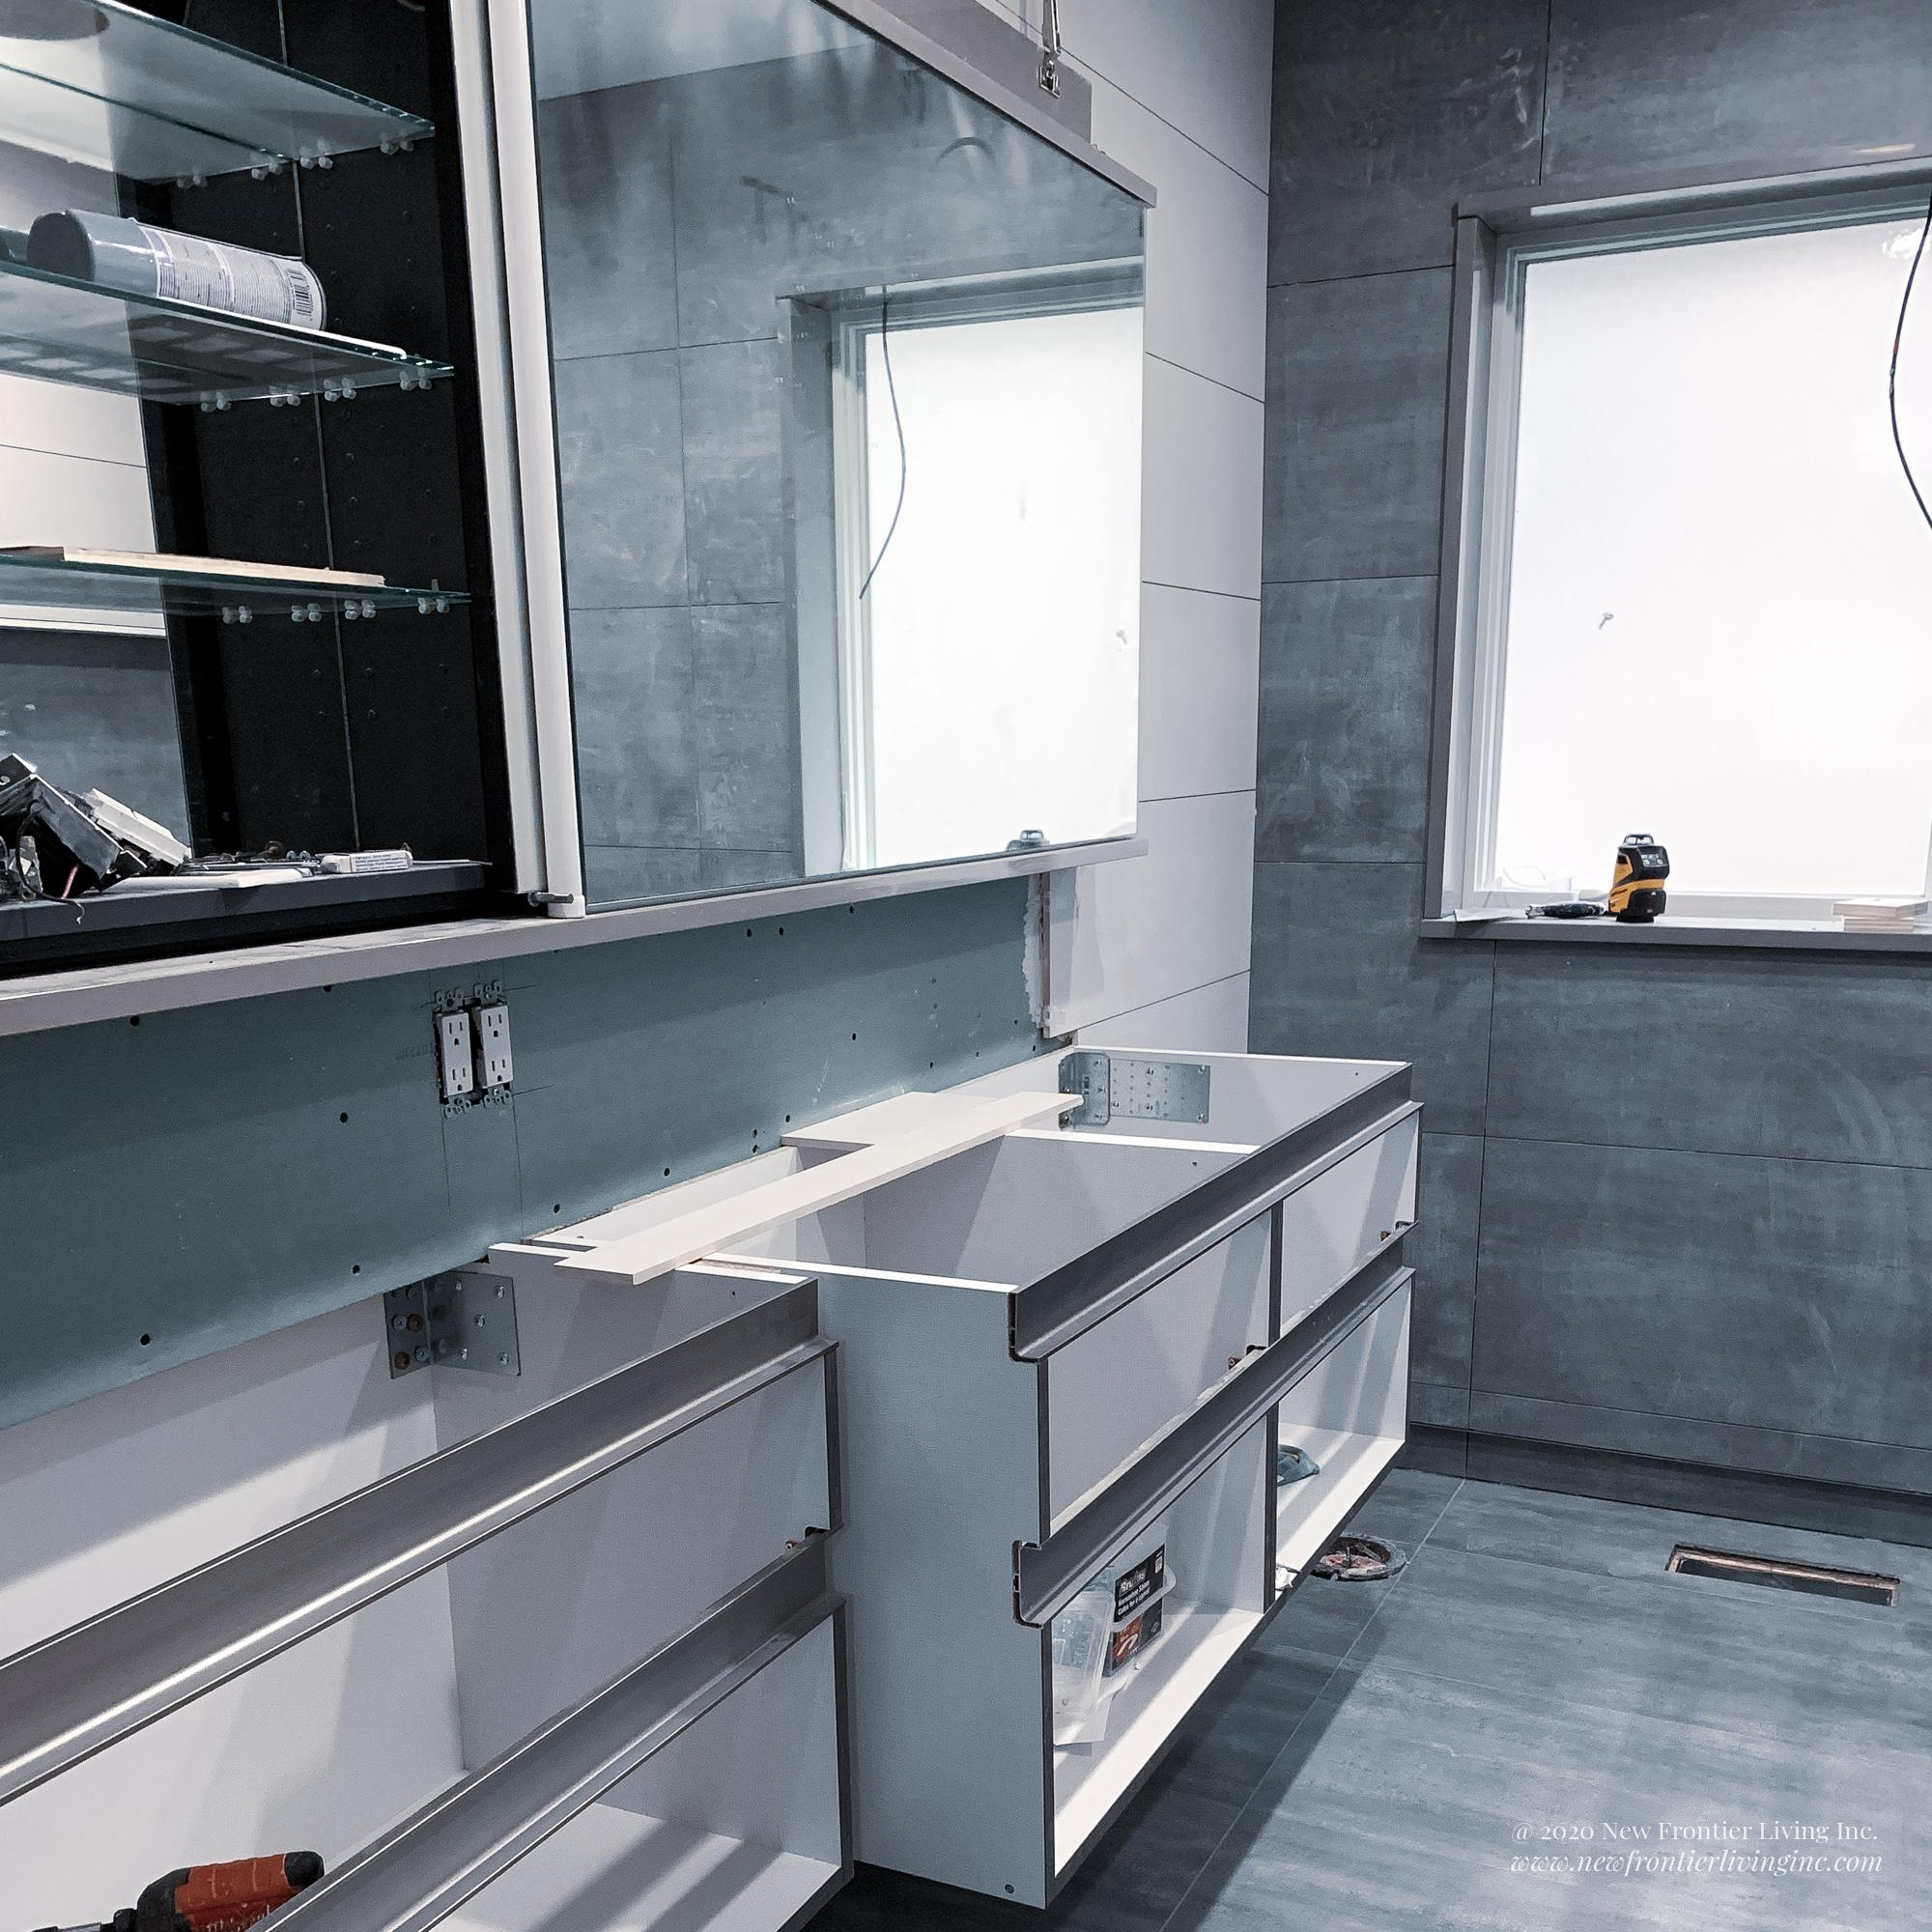 Bathroom during remodeling, bare cabinetry boxes and tiles